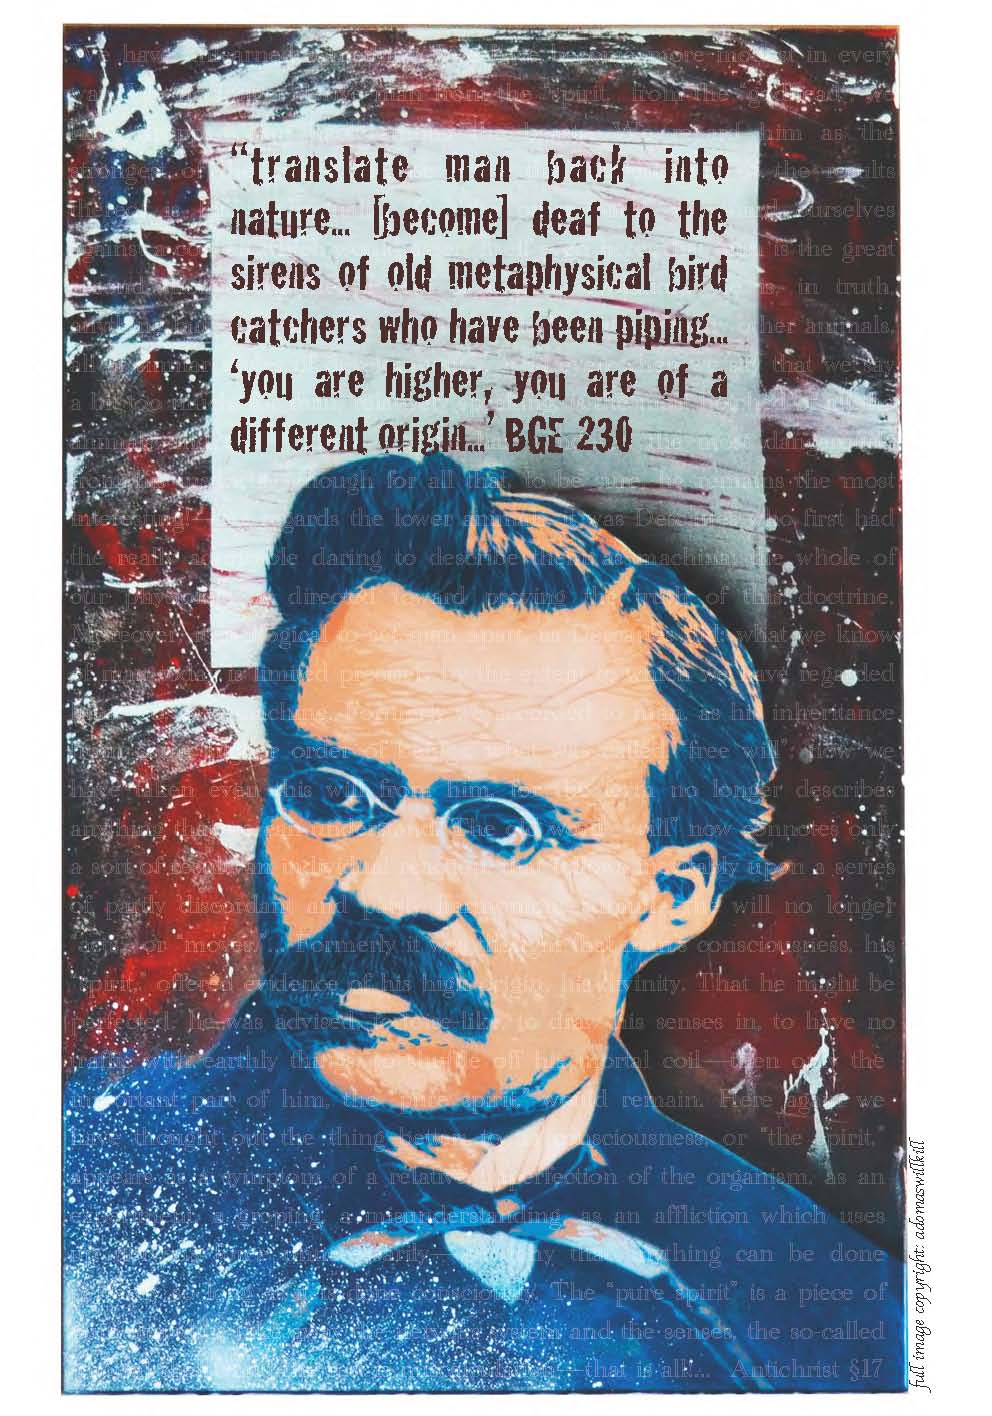 religion in chekhov and nietzsches philosophies essay An nyrb classics original in 1869, at the age of twenty-four, the precociously brilliant friedrich nietzsche was appointed to a professorship of classical the foundations of all external authority, nietzsche demonstrated that the intellect, once it frees itself of all binding illusions philosophical, religious, and.